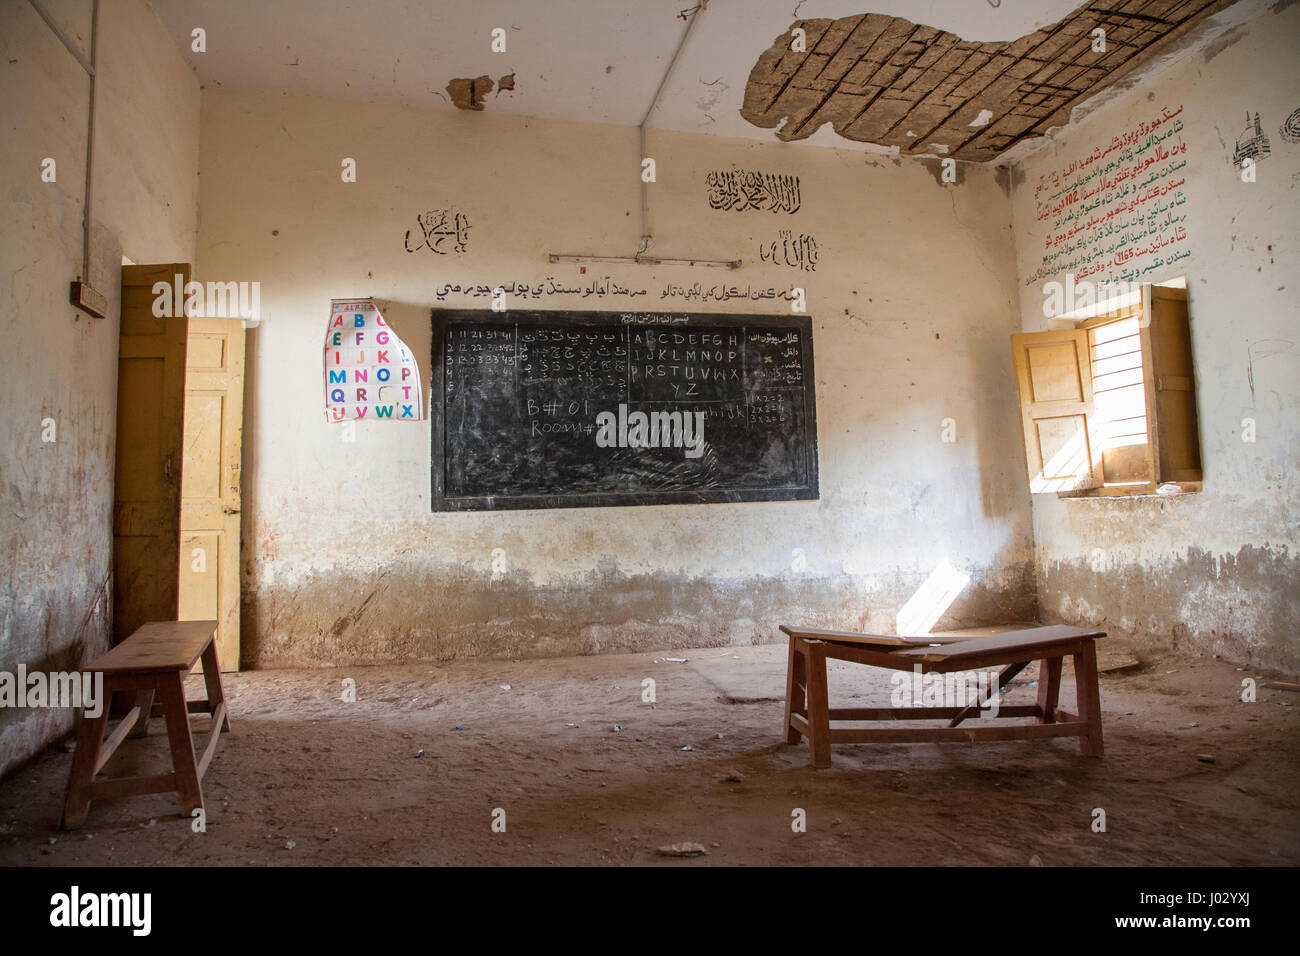 Conditions of Government Schools in Pakistan - Stock Image